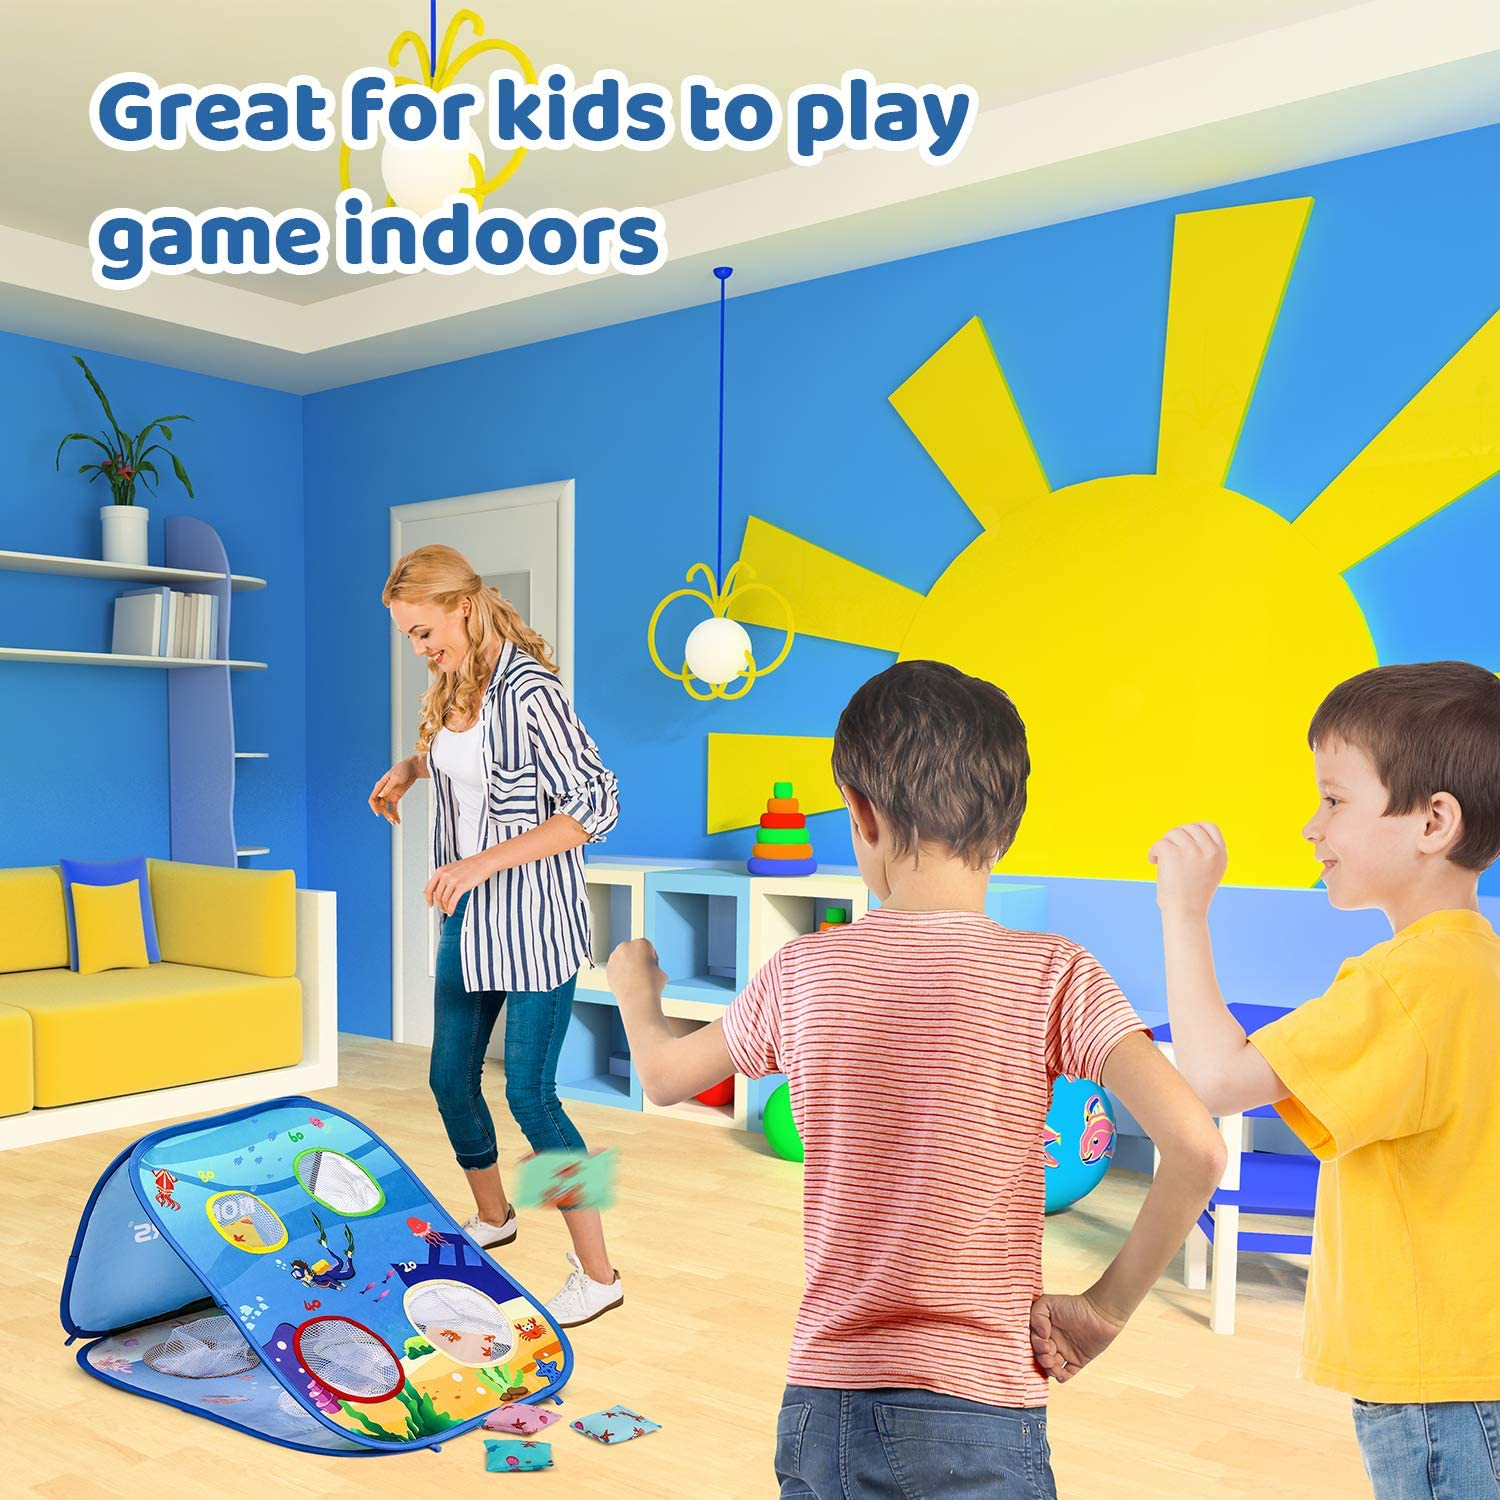 Double Sided Portable Cornhole Boards Collapsible Bean Bag Toss Game Toy with 6 Ocean Themes Beanbags for Indoor Outdoor Toss Games NONZERS Bean Bag Toss Game for Kids